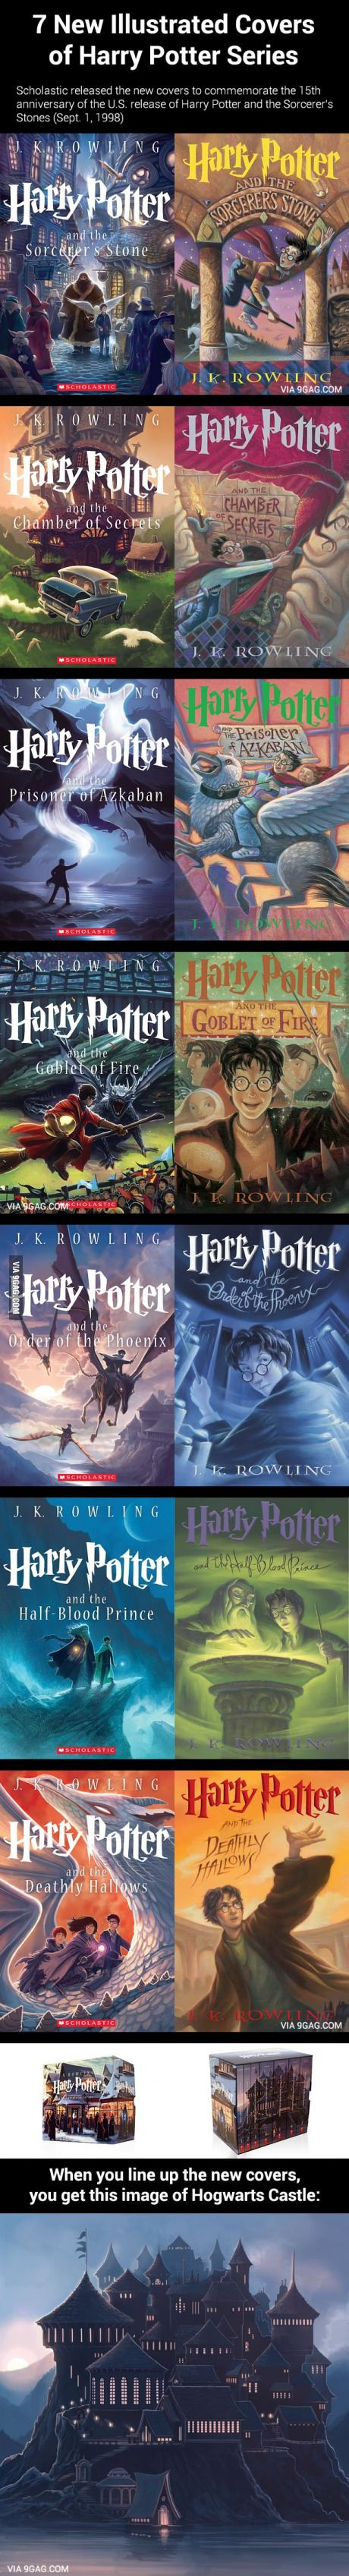 Beautifully Illustrated Book Covers ~ New illustrated covers of harry potter series nerdy